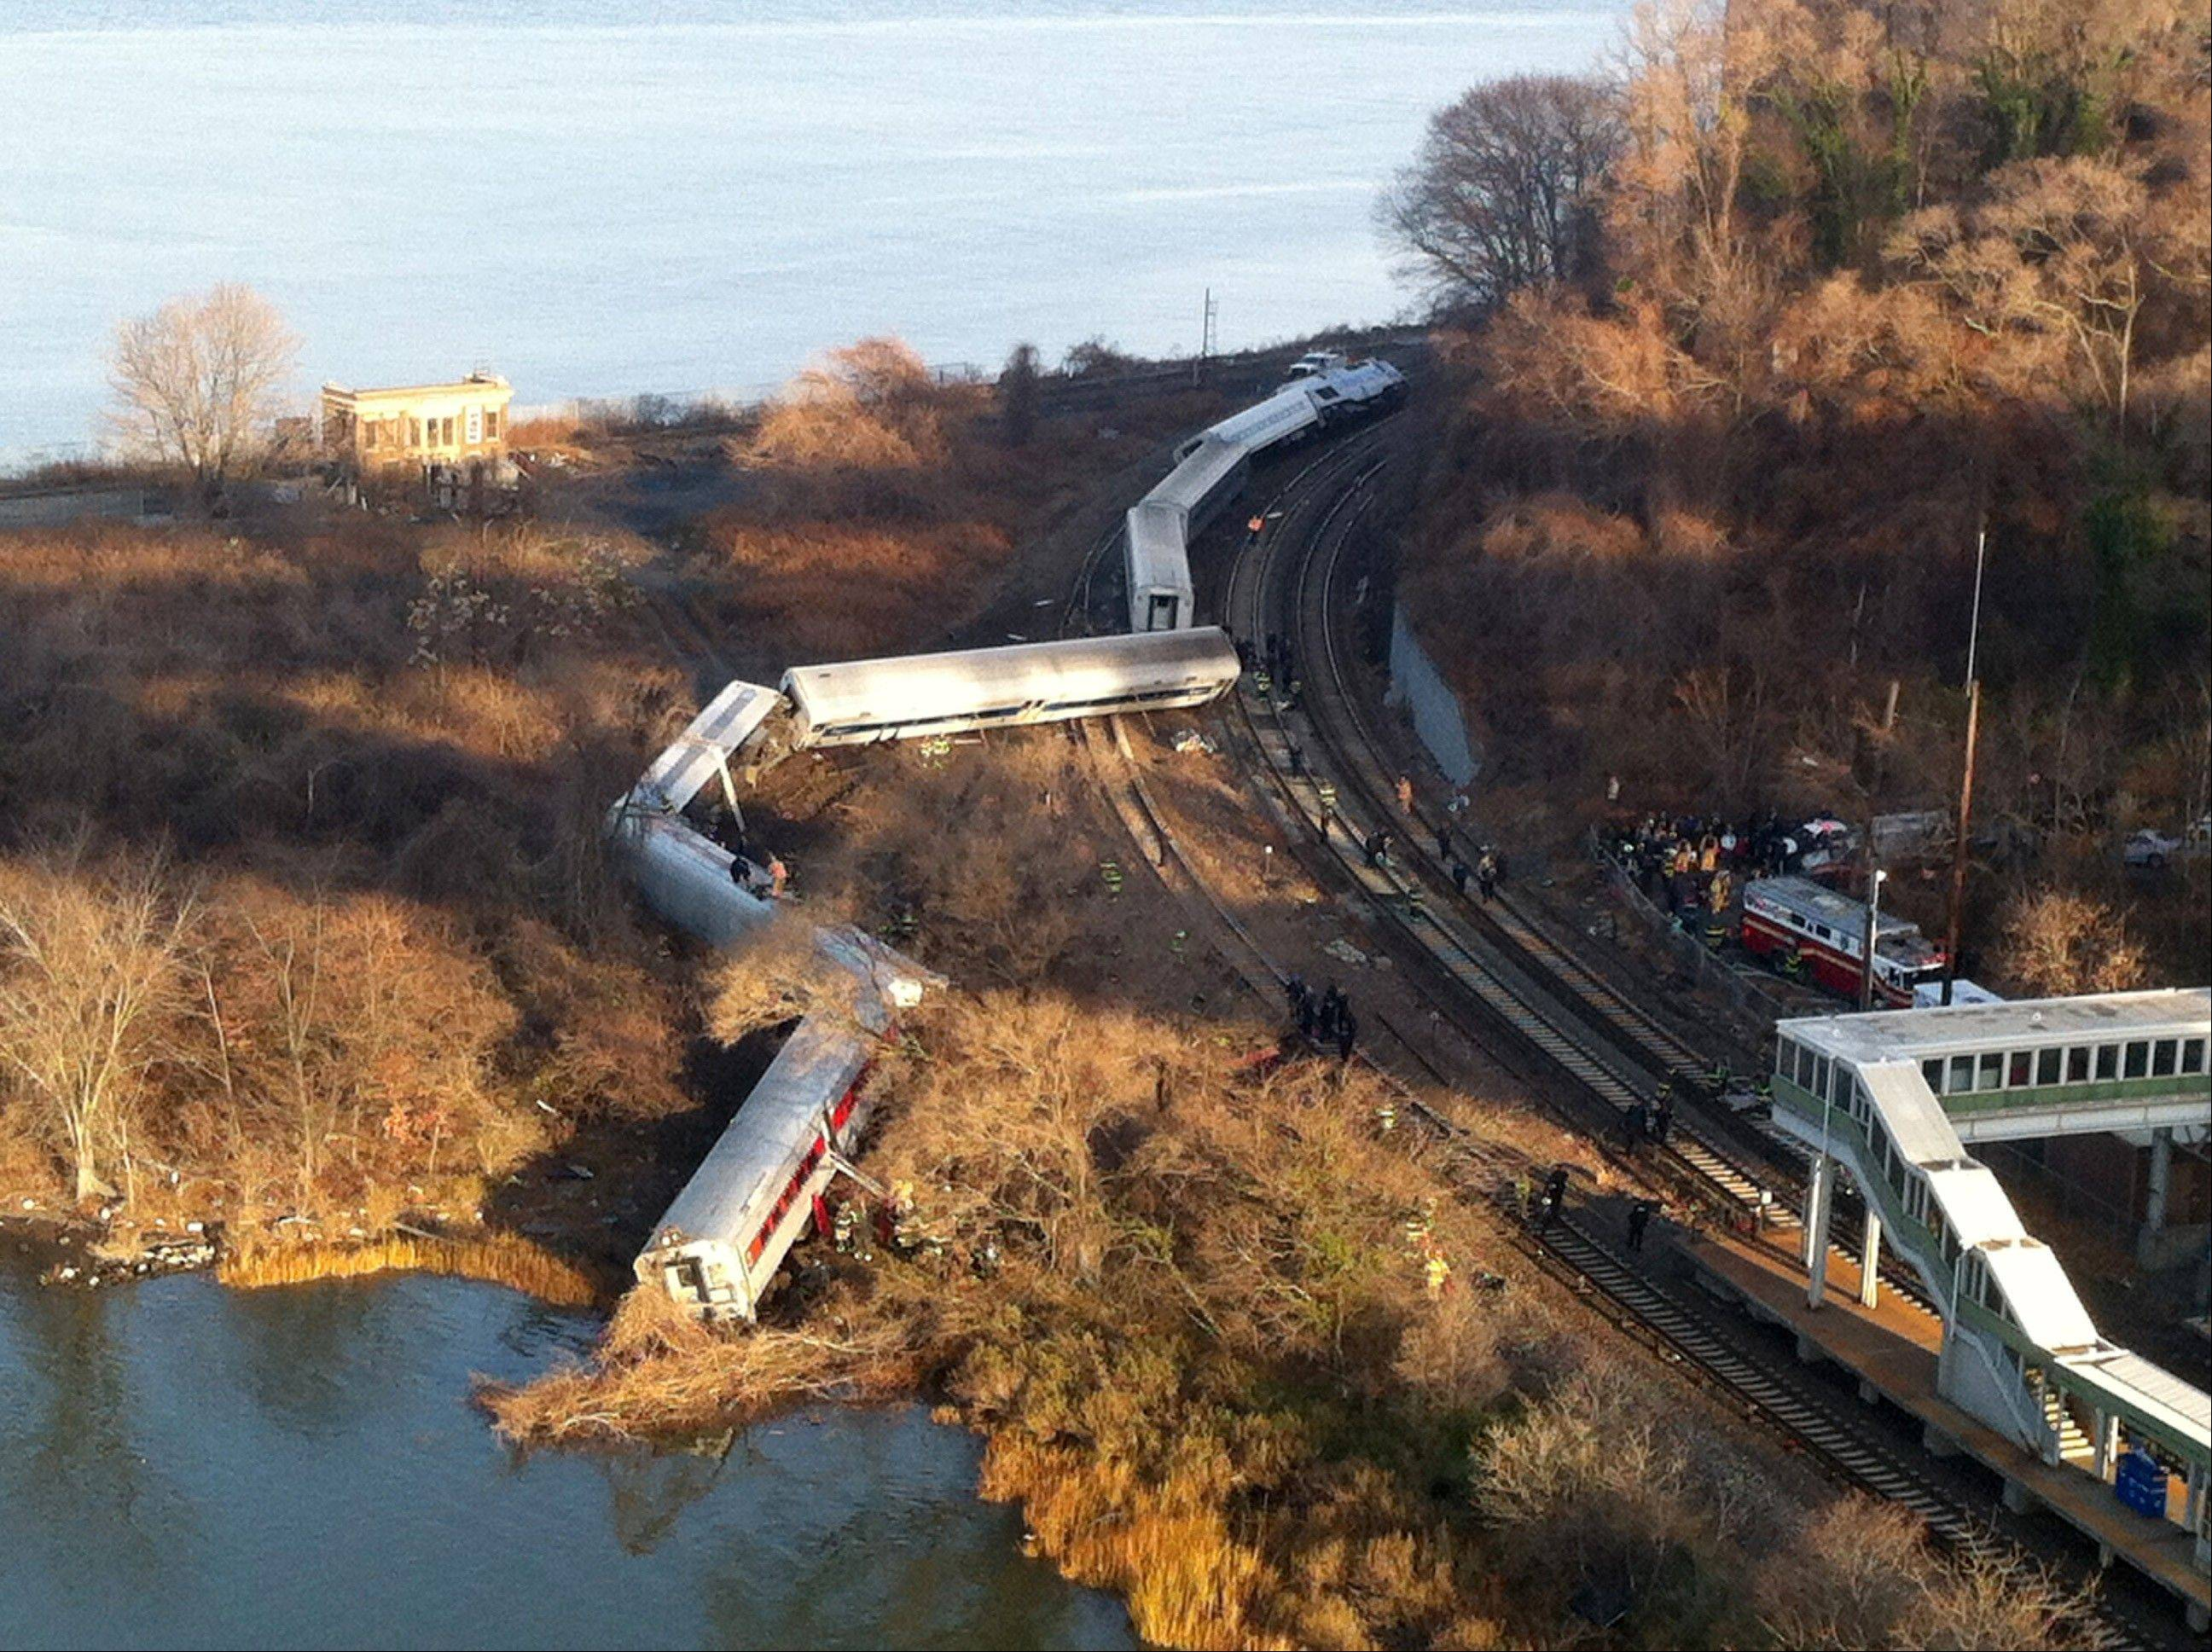 Cars from a Metro-North passenger train are scattered after the train derailed in the Bronx neighborhood of New York in this photo from Dec. 1. Although the train had an automatic breaking system that might have prevented the crash, at the time it wasn't set up to enforce speed limits on the curve where the wreck happened.